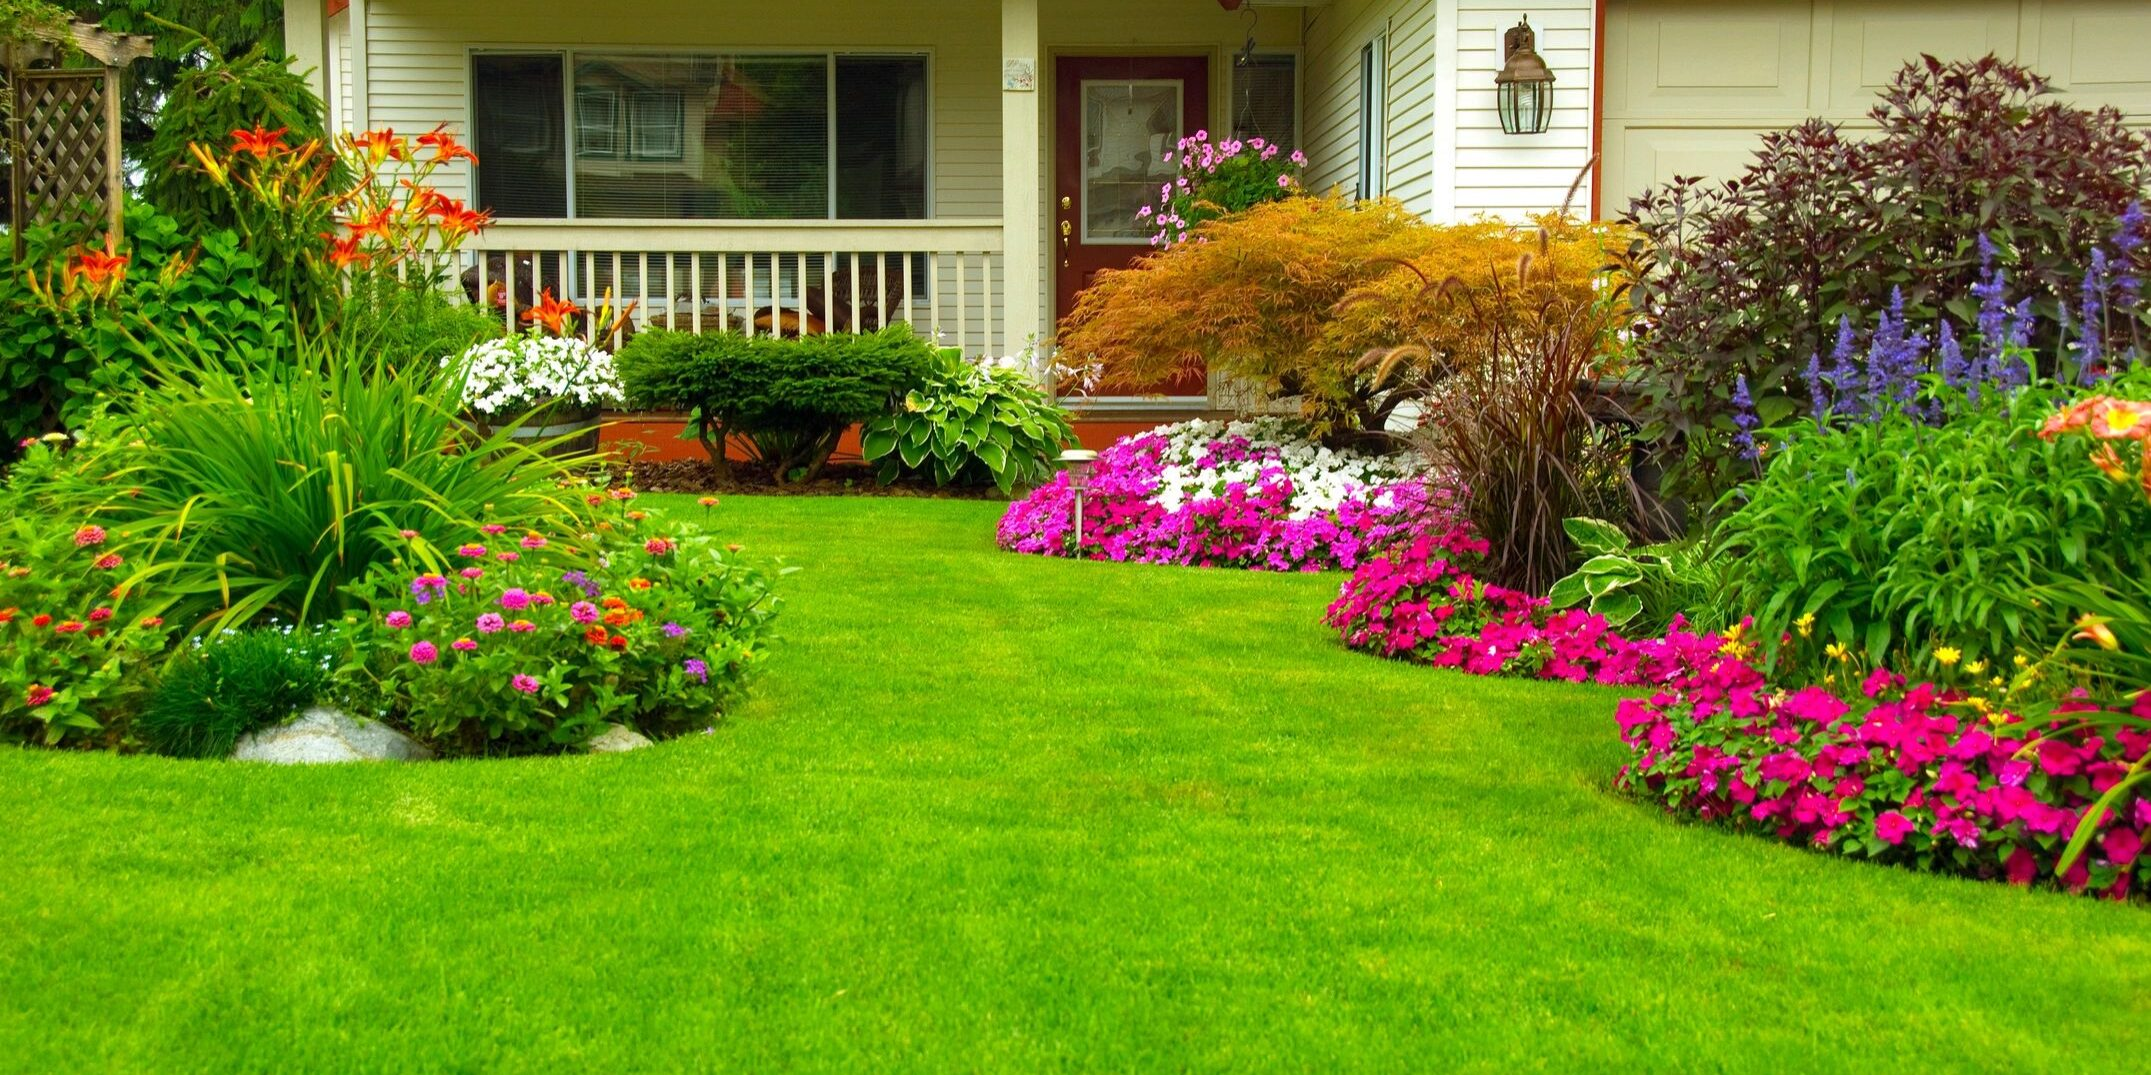 Services for your home and business garden - landscaping and maintenance of a front-yard